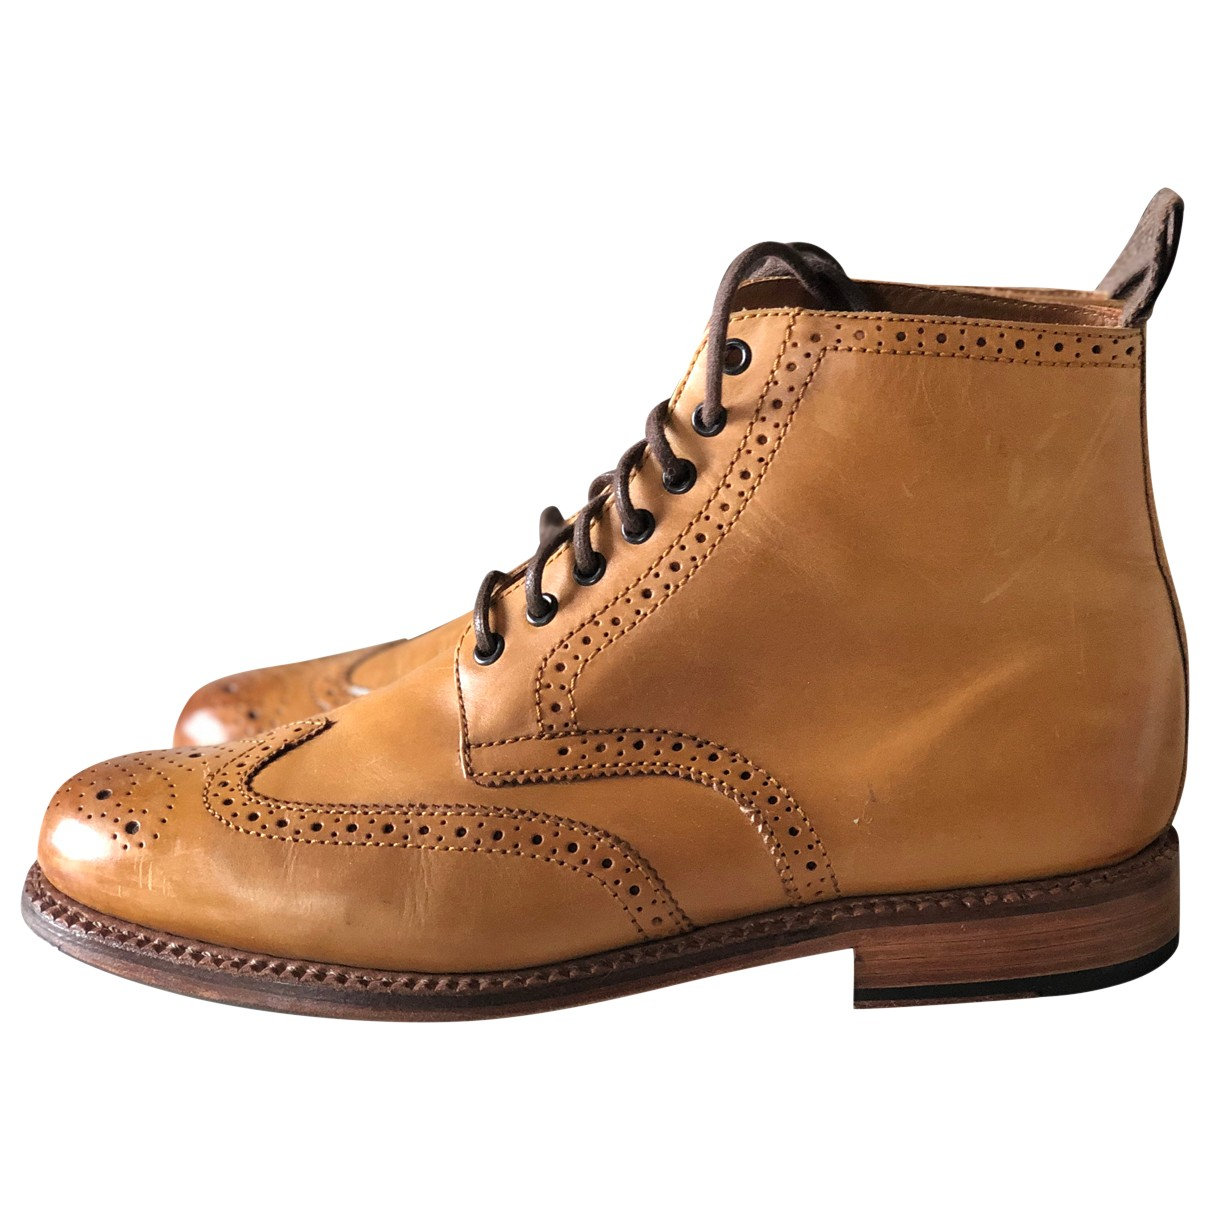 Grenson N Brown Leather Boots for Men 9 UK